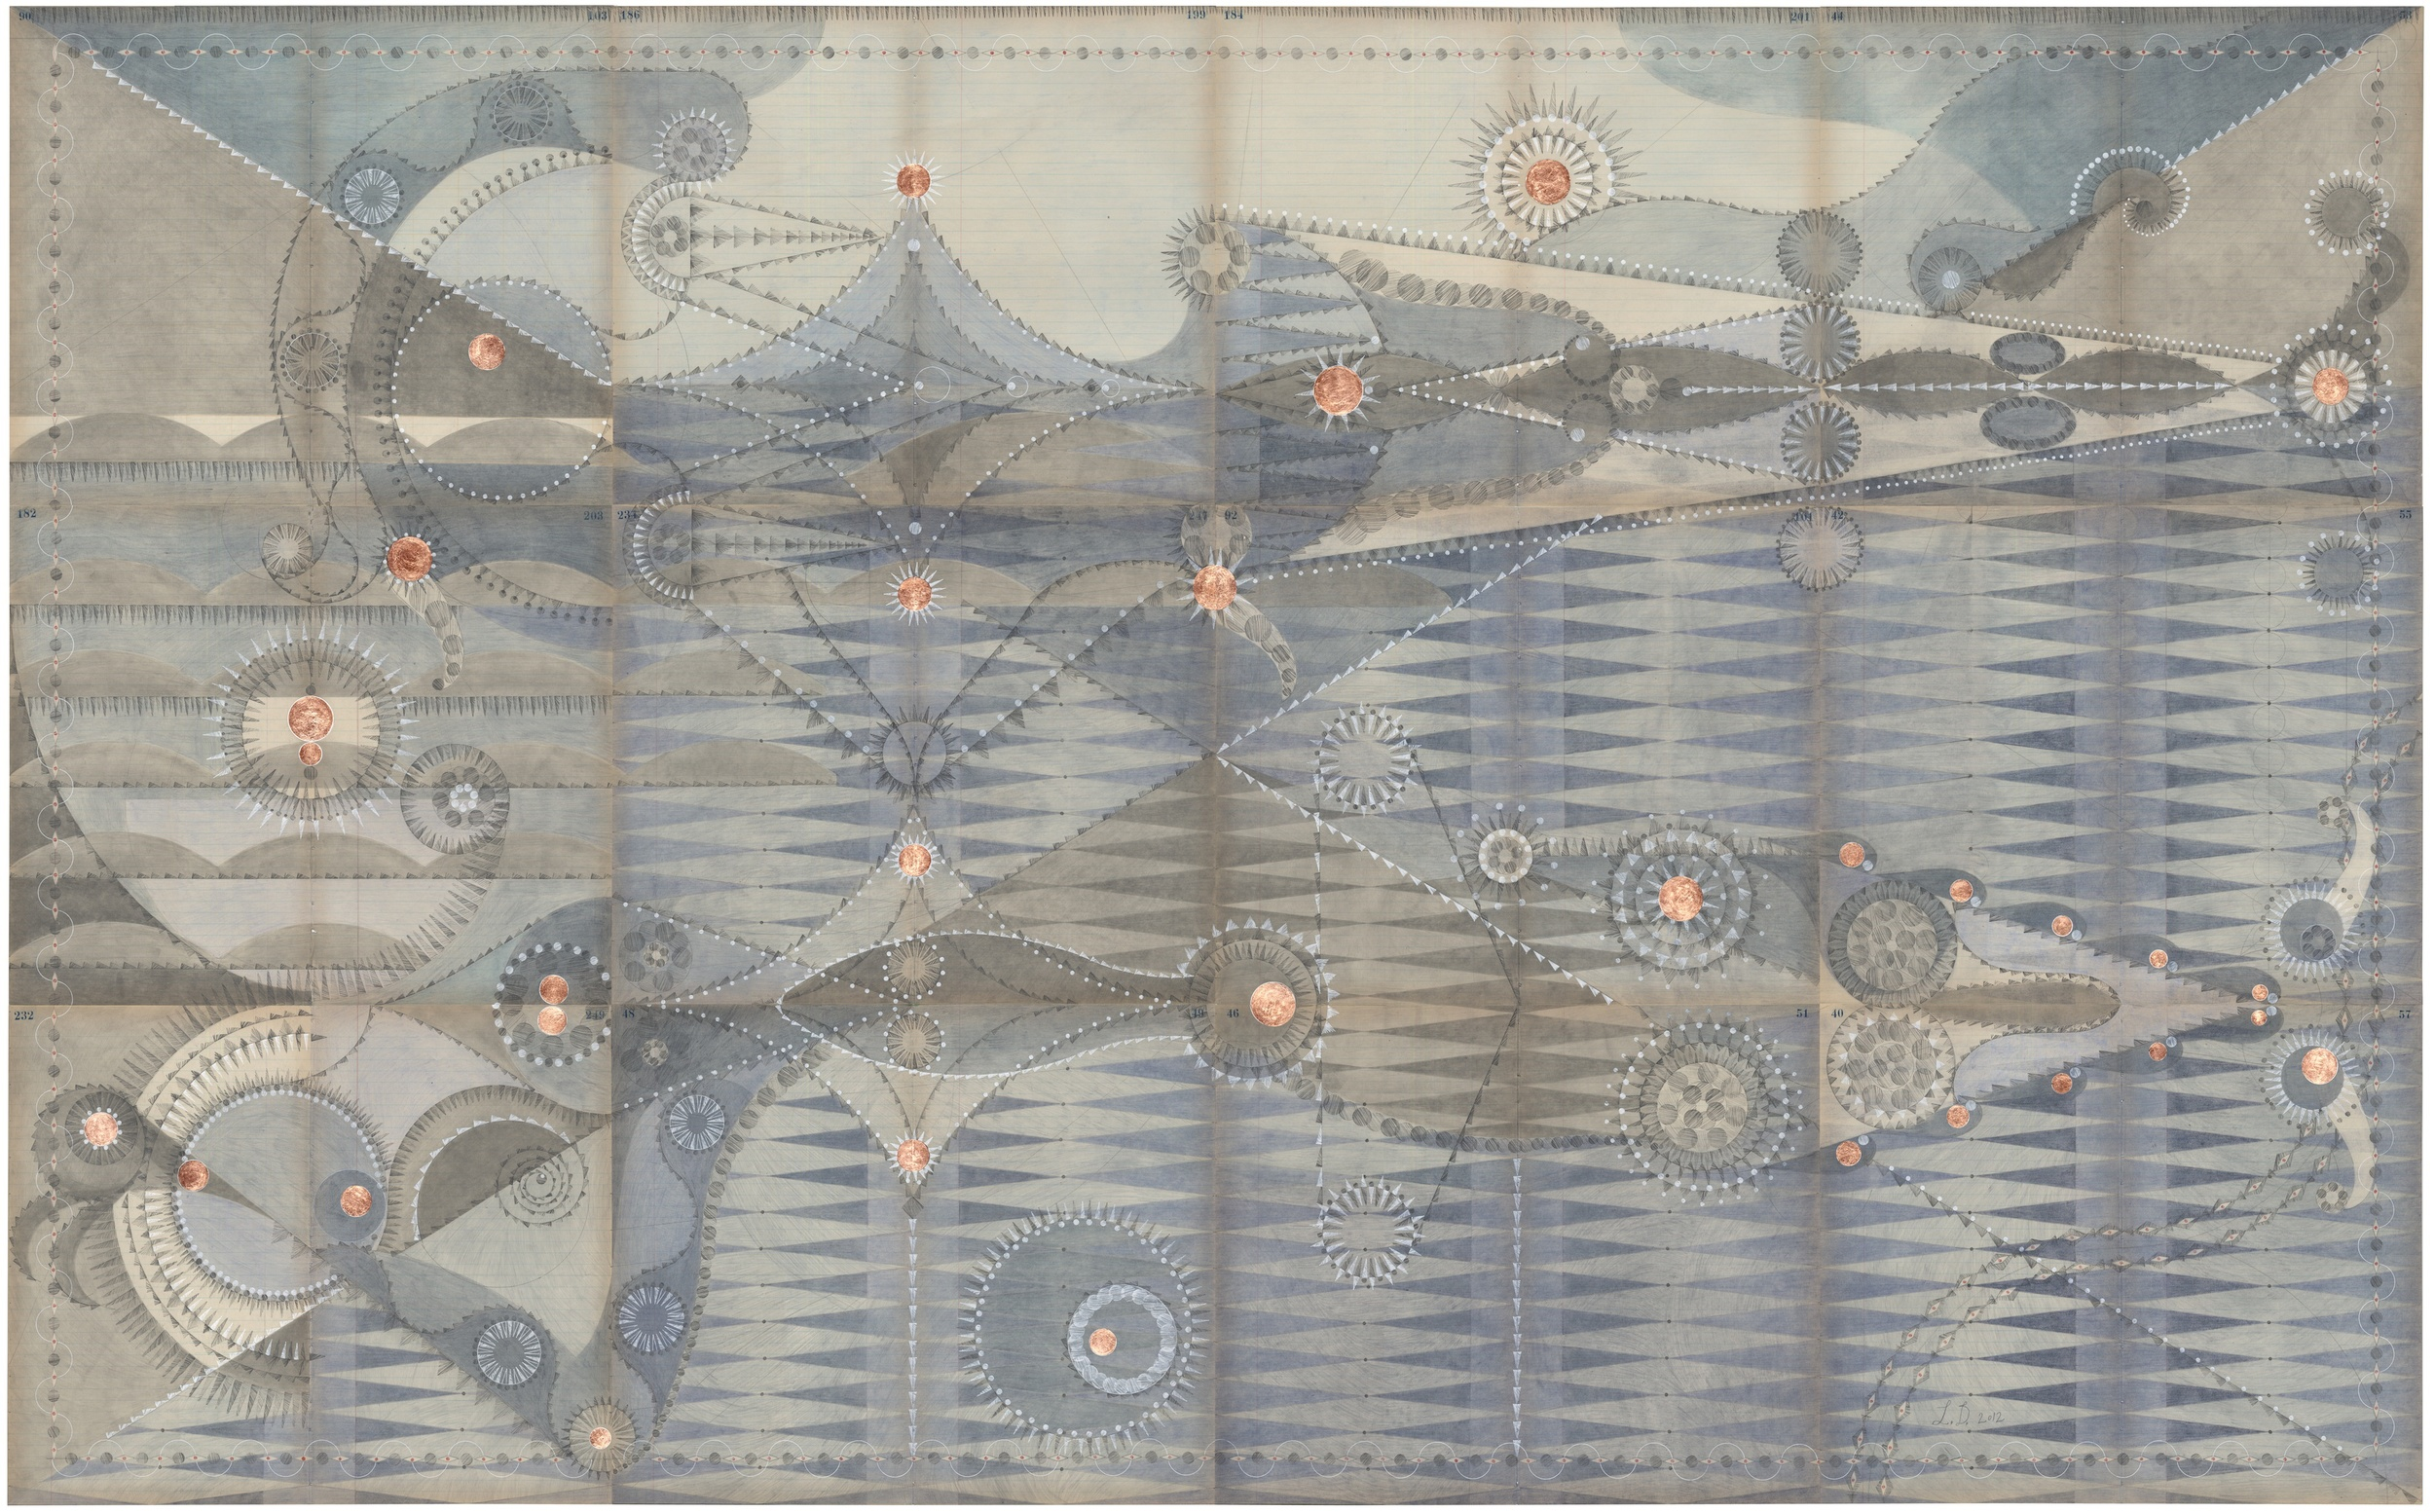 Bathing Constellation, Dusk,  Colored Pencil and Graphite on Antique Ledger Book Pages.  54.25 x 66.5